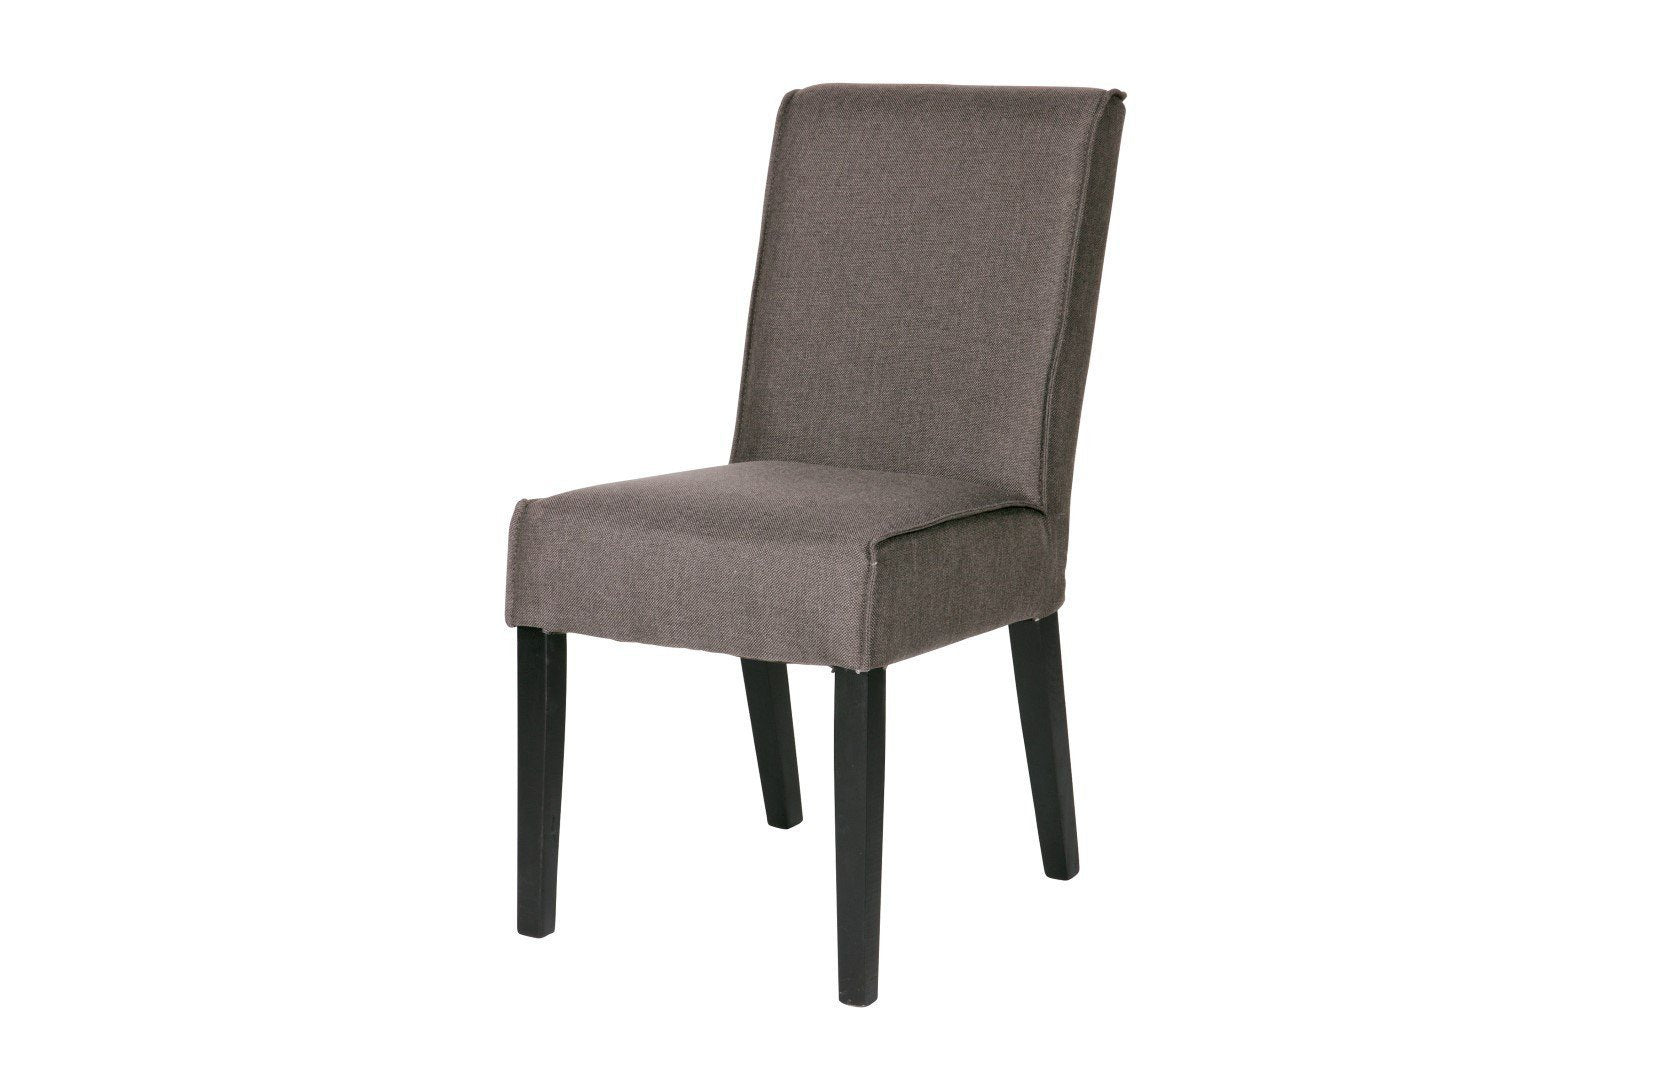 Dining chair JACCO